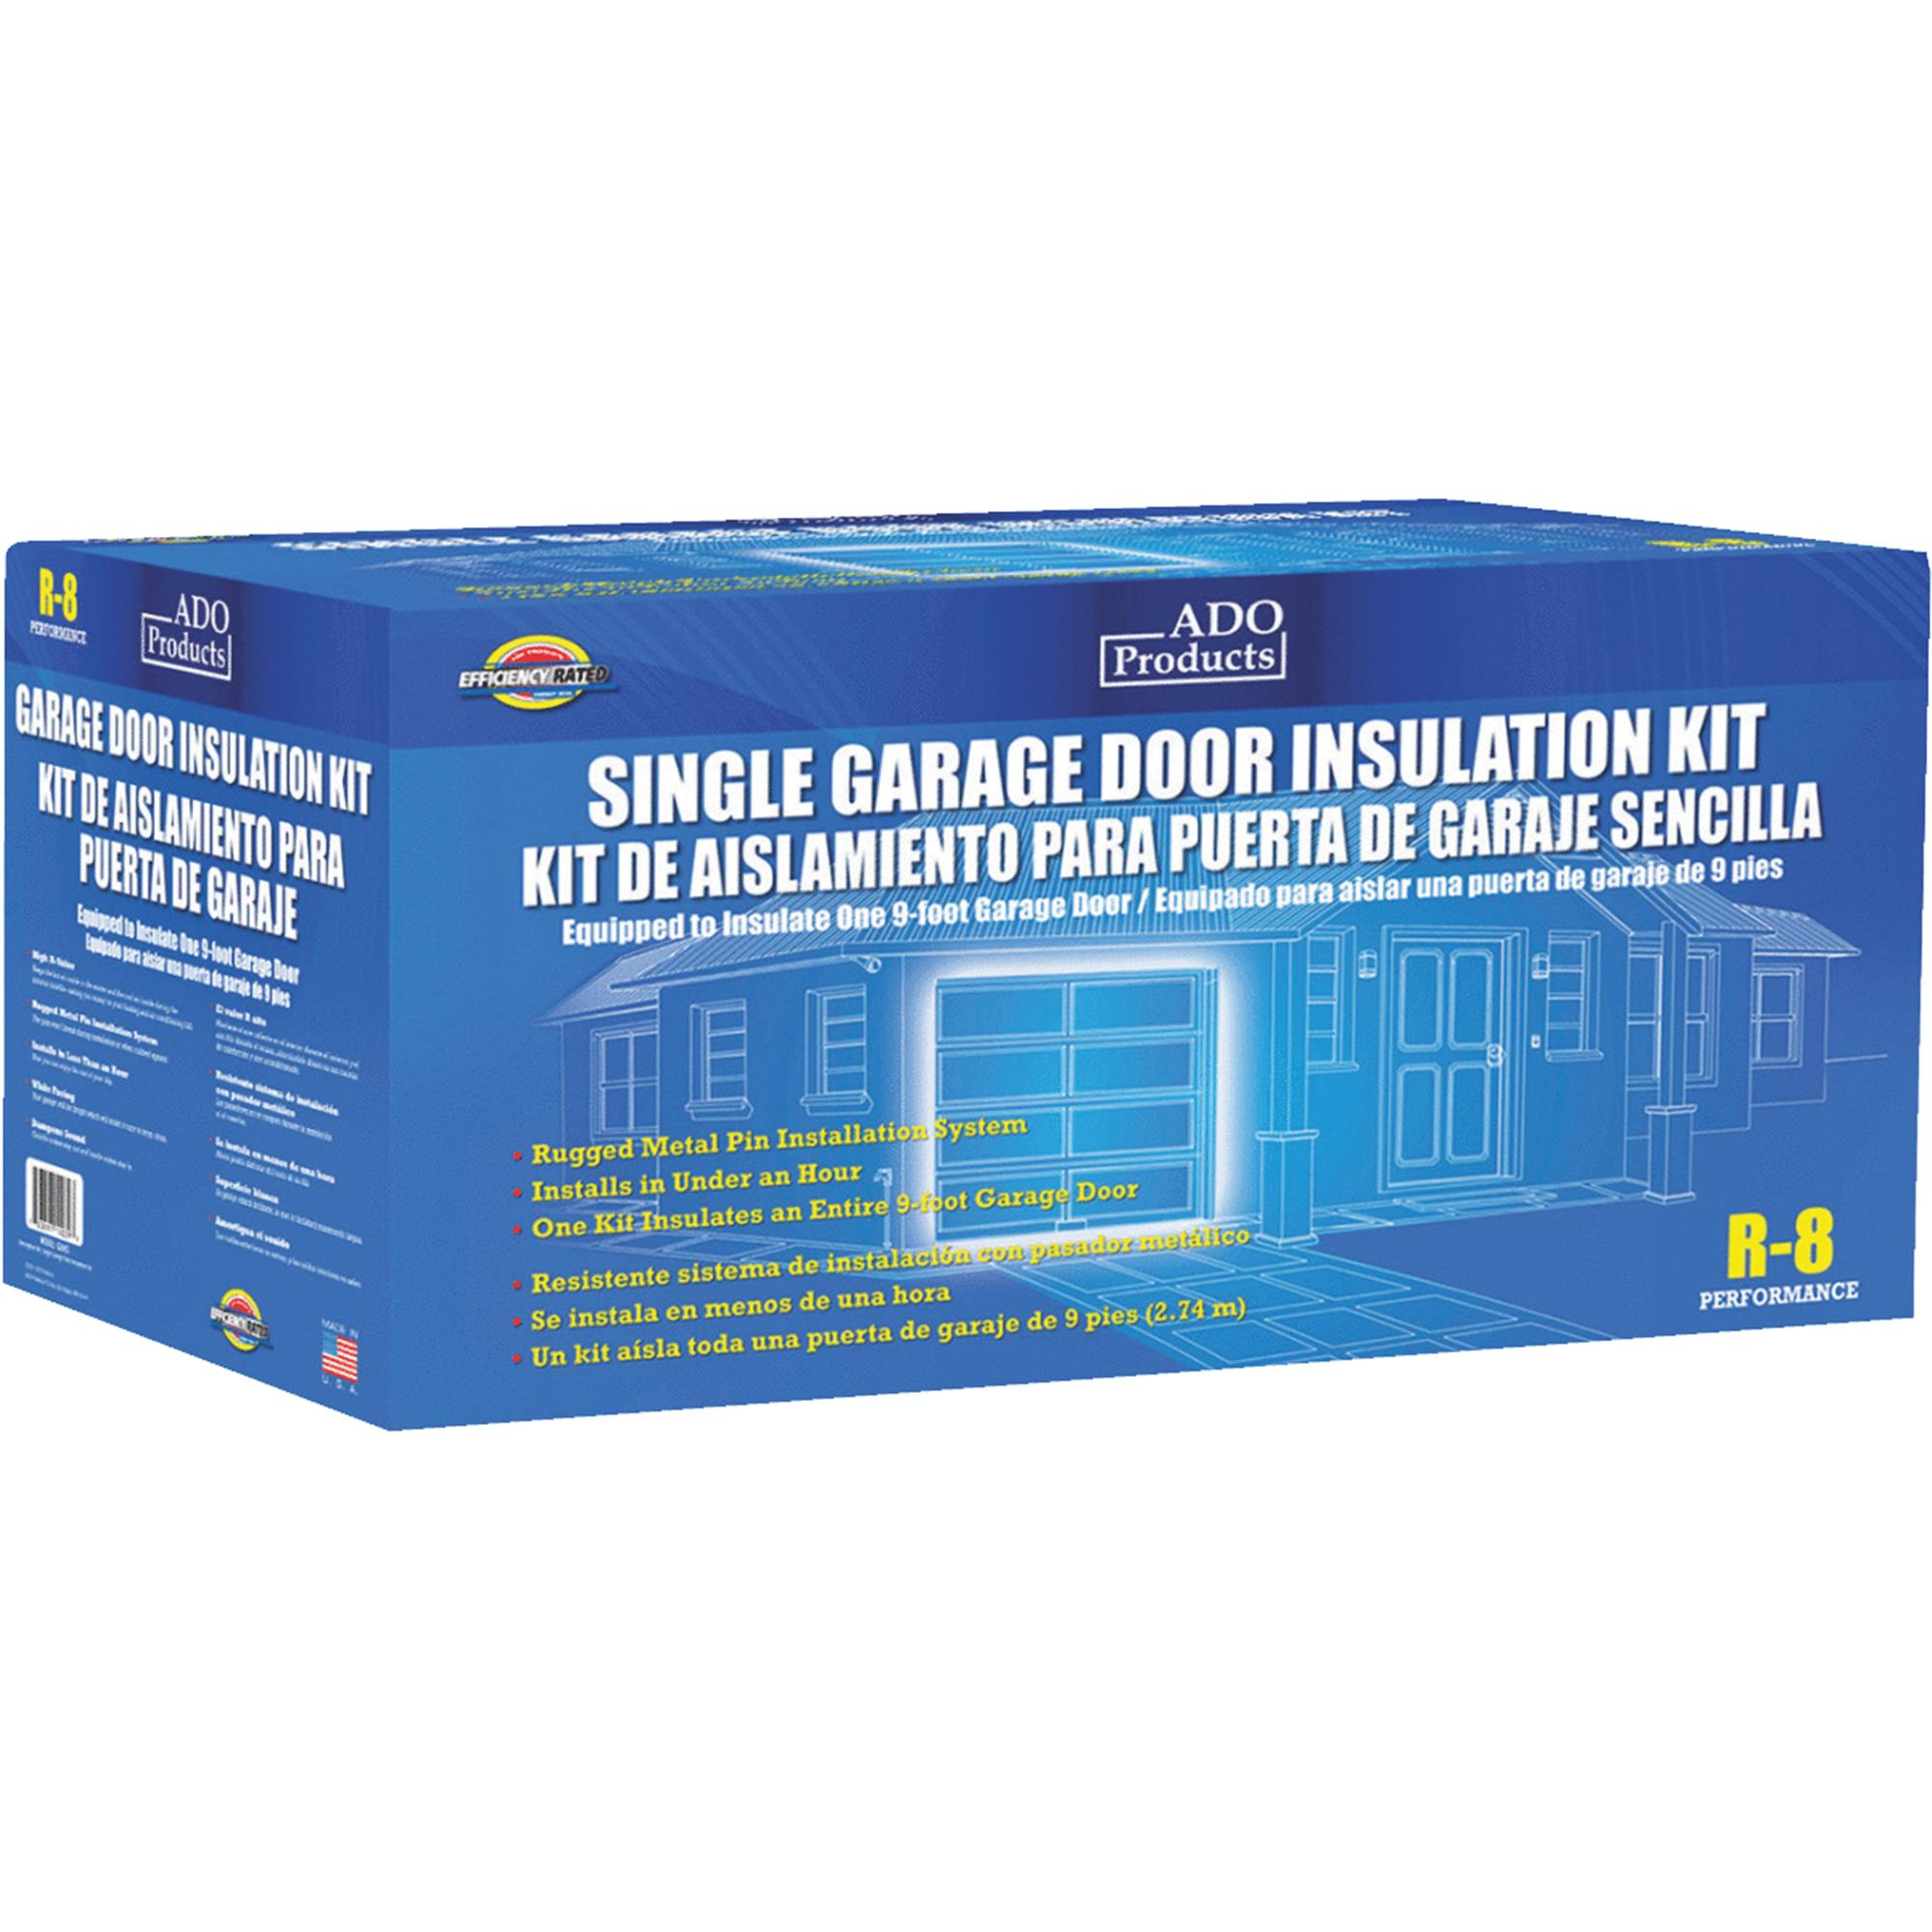 tfast shop manville garage johns styles r insulation and of stunning trend fluidelectric reviews door faced incredible kit panel at